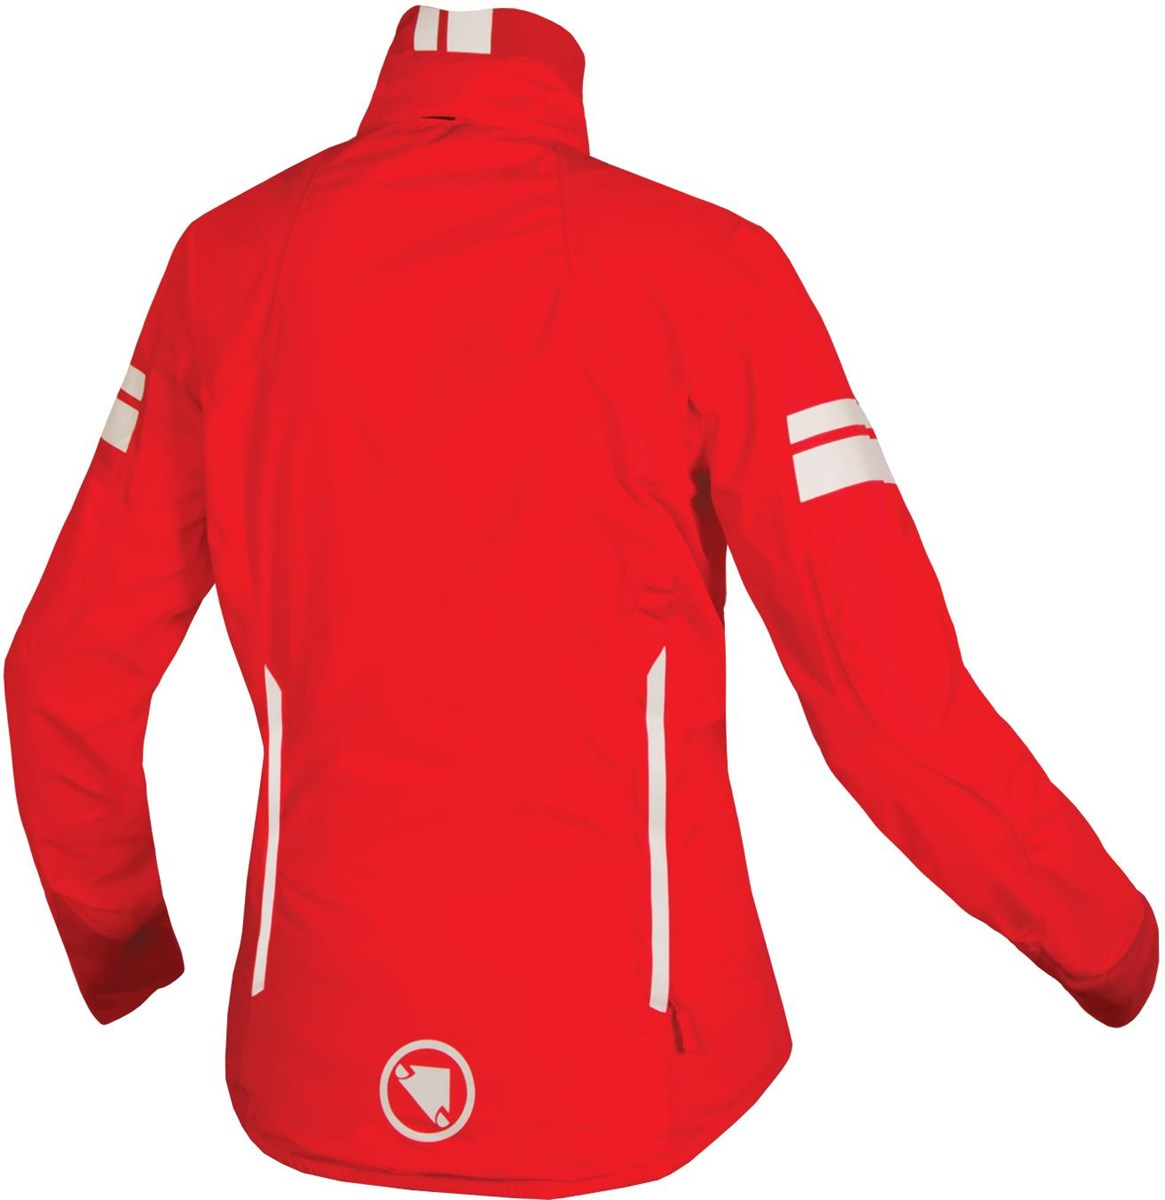 Endura FS260 Pro SL Shell Womens Cycling Jacket AW17